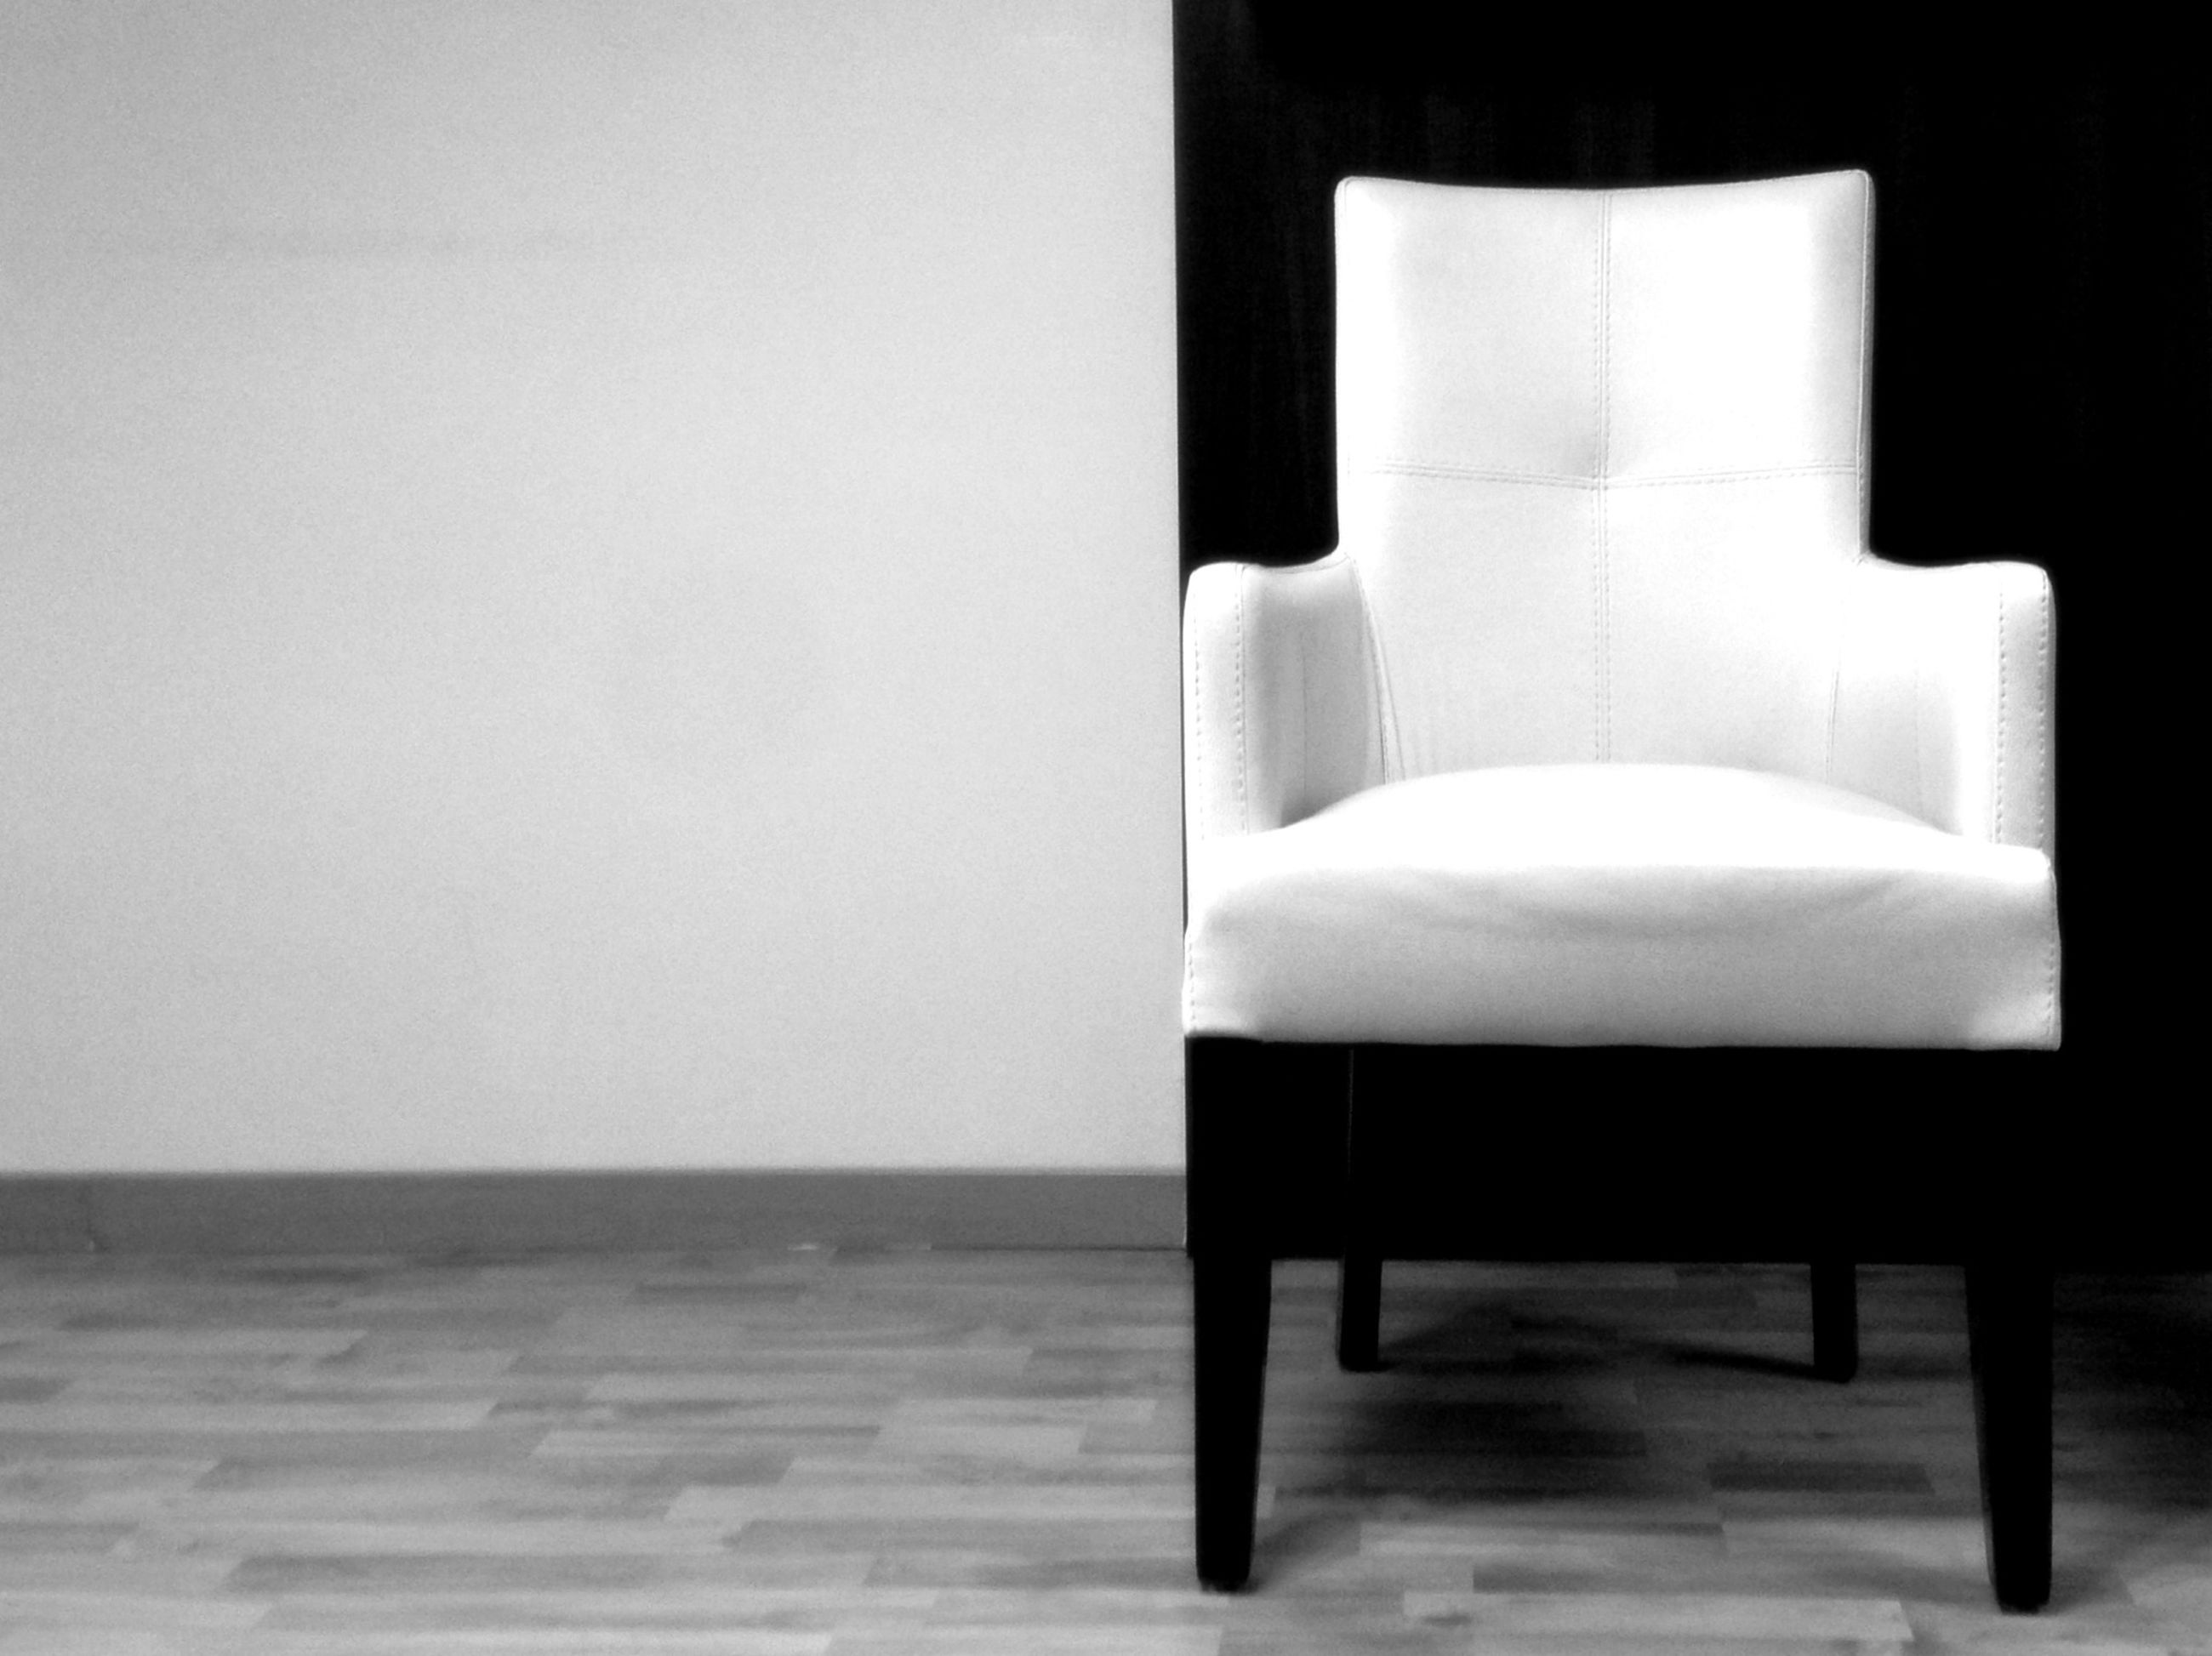 indoors, copy space, empty, table, chair, absence, white color, home interior, wall - building feature, white, wall, no people, still life, flooring, furniture, wood - material, seat, shadow, simplicity, lighting equipment